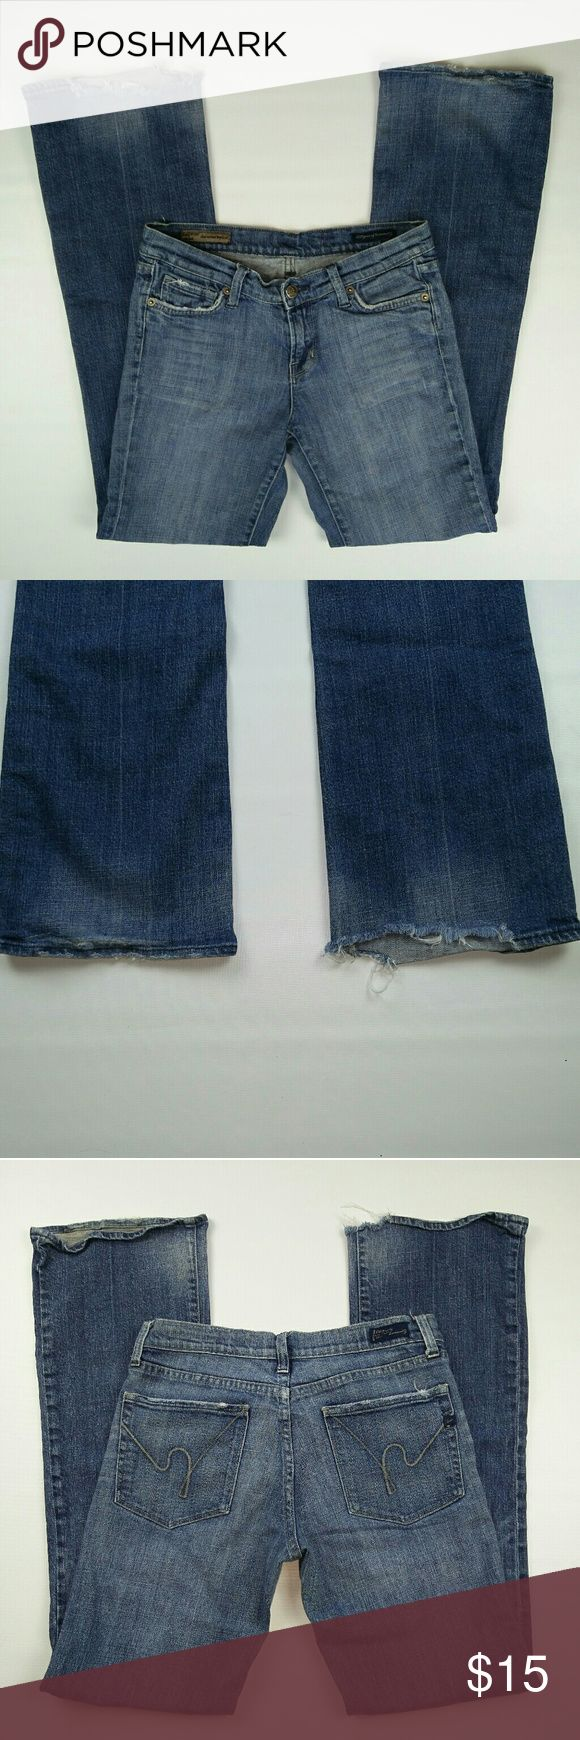 CITIZENS OF HUMANITY BOOT CUT JEANS 27 CITIZENS OF HUMANITY BOOT CUT JEANS 27 the bottoms are pretty worn out. IF YOU CAN GET PAST THAT OR YOU LOOKING FOR IT, THEY ARE YOURS FOR SYMBOLIC PRICE  SMOKE AND PETS FREE HOUSE  WILL SHIP WITHIN 24 HOURS FROM CLEARED PAYMENT Citizens of Humanity Jeans Boot Cut